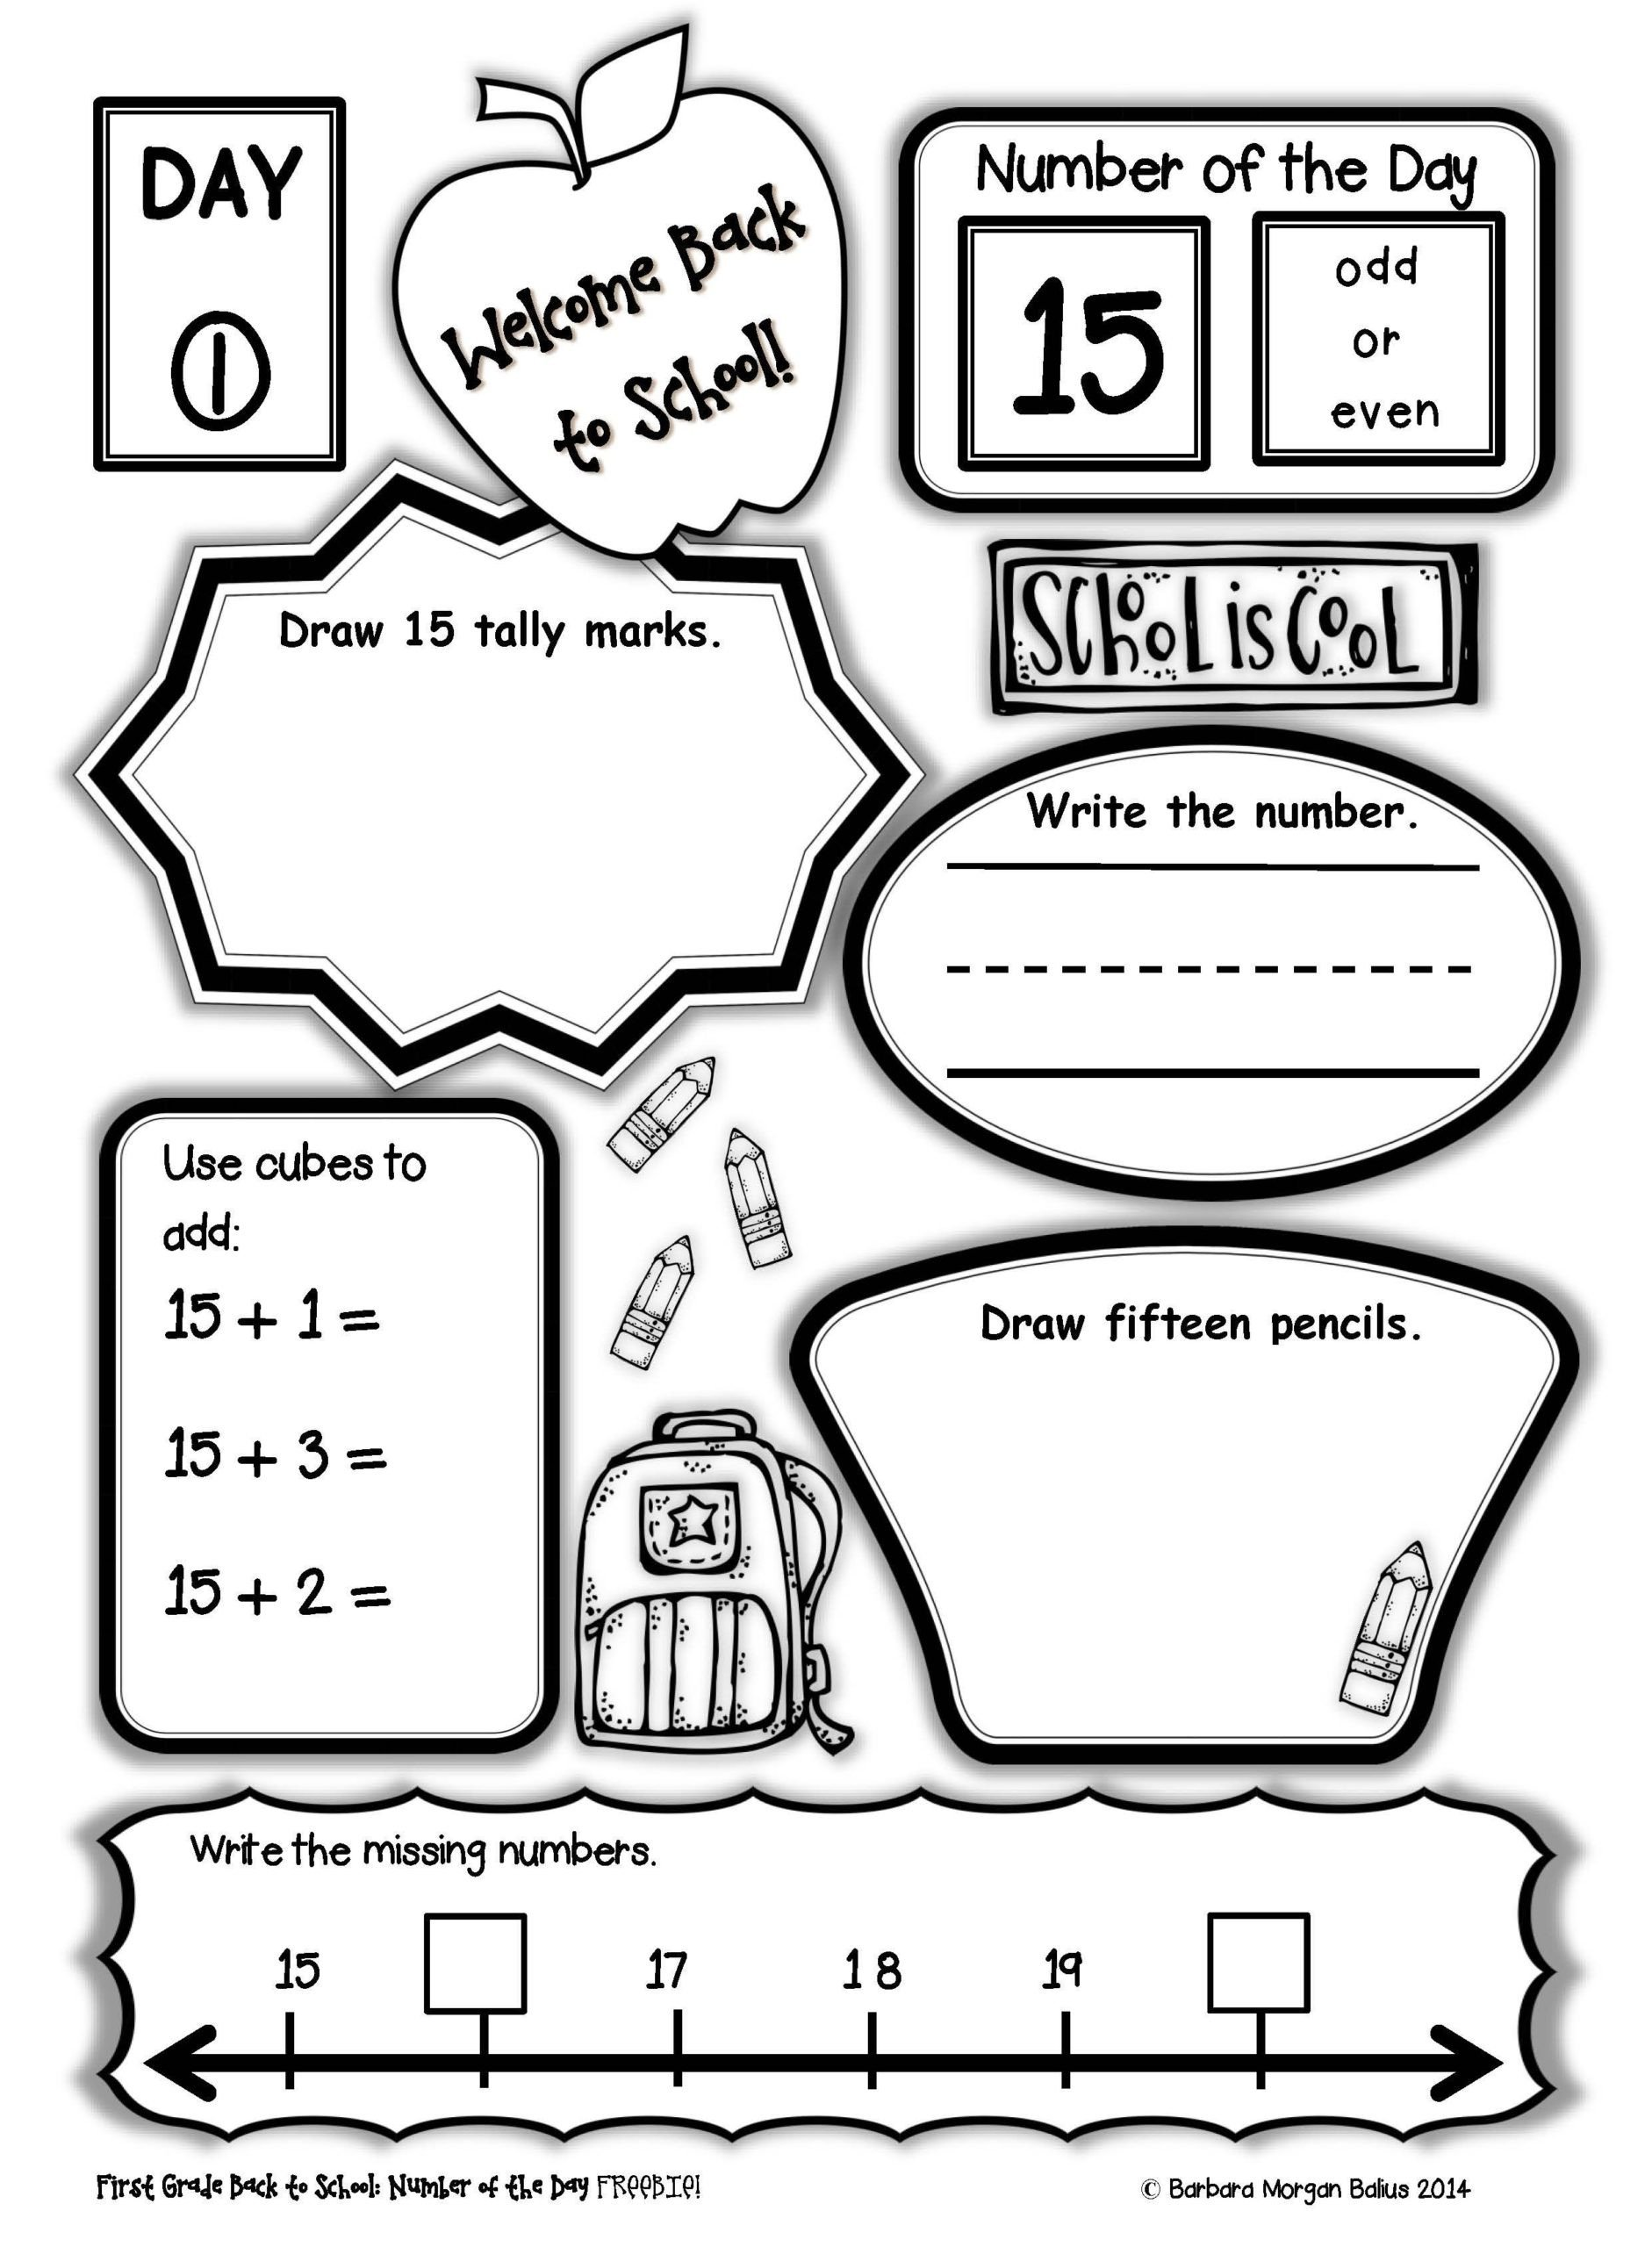 First Grade History Worksheets 1st Grade social Stu S Games Days the Week Activities